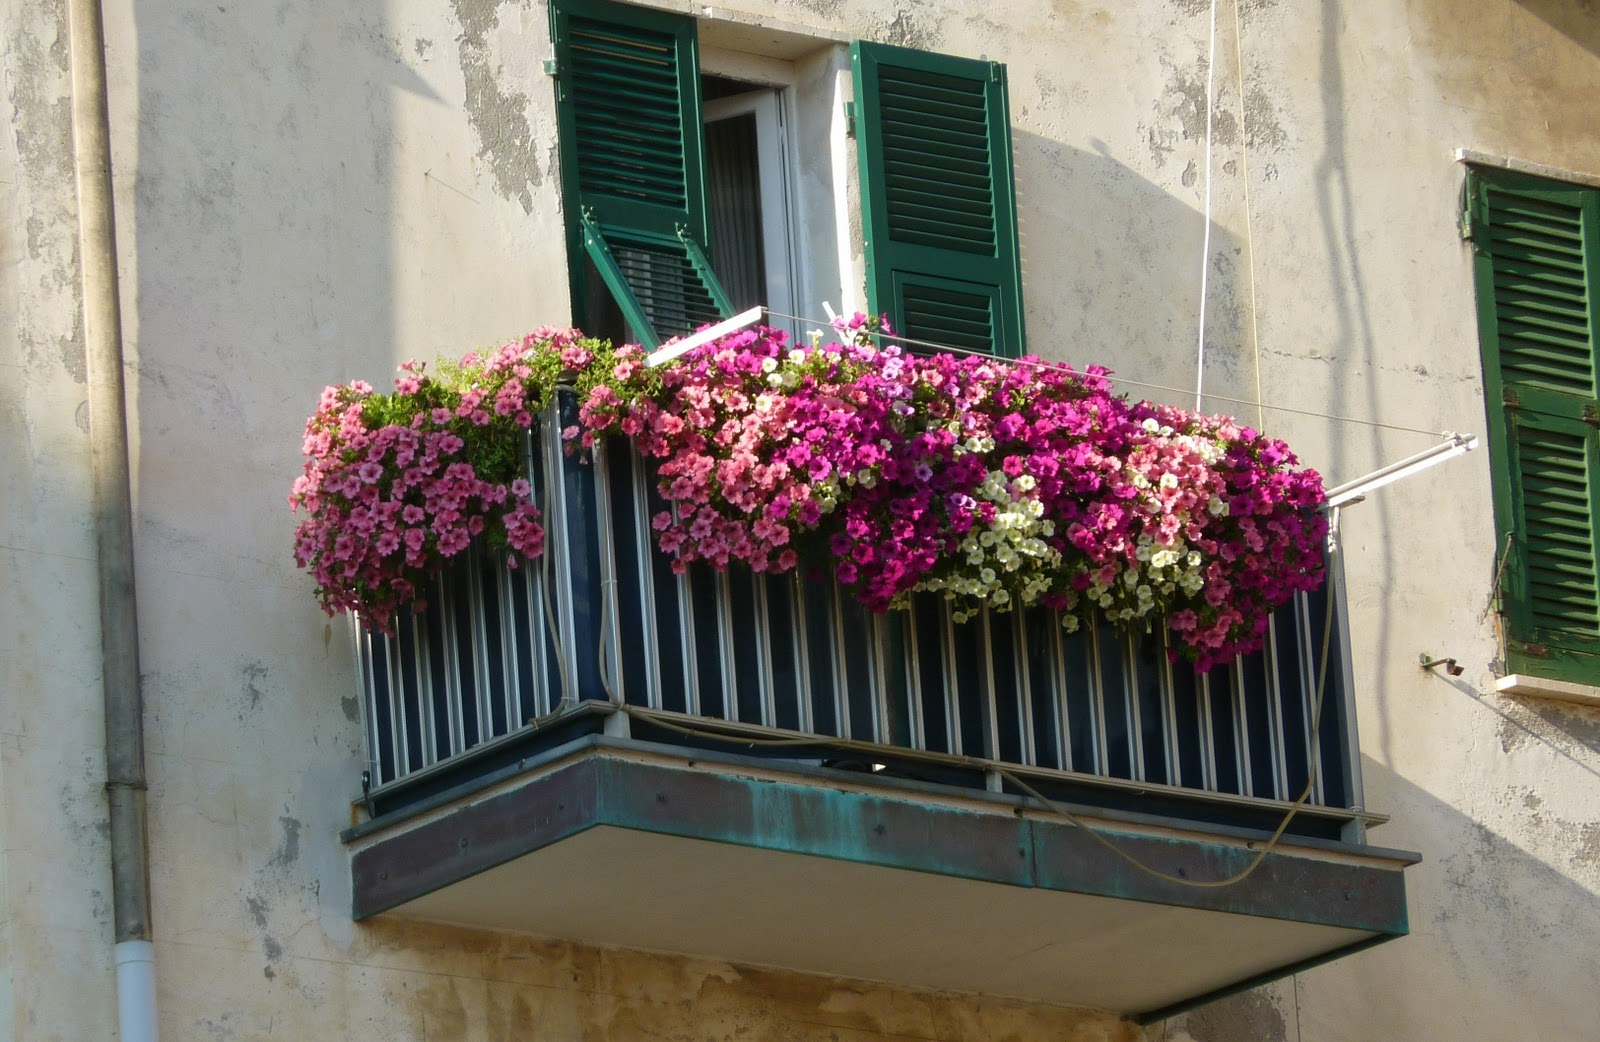 1000 images about balcony garden on pinterest balcony for Balcony flowers